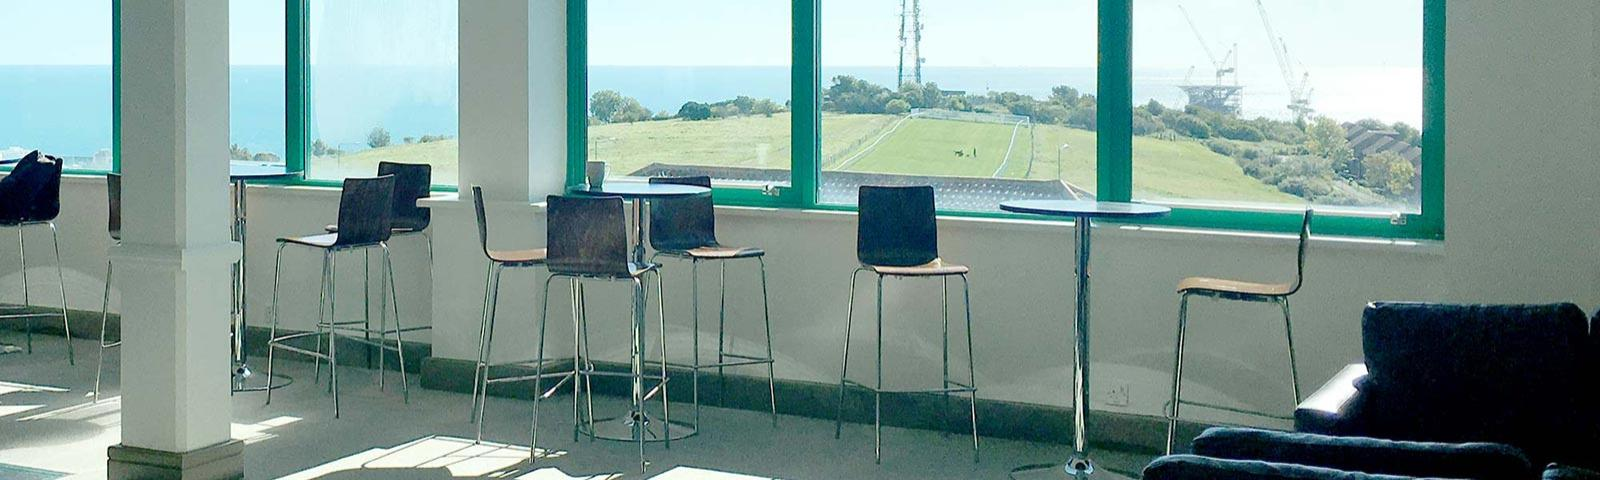 A view from inside Silks at Brighton Racecourse out over the course and over the English Channel.